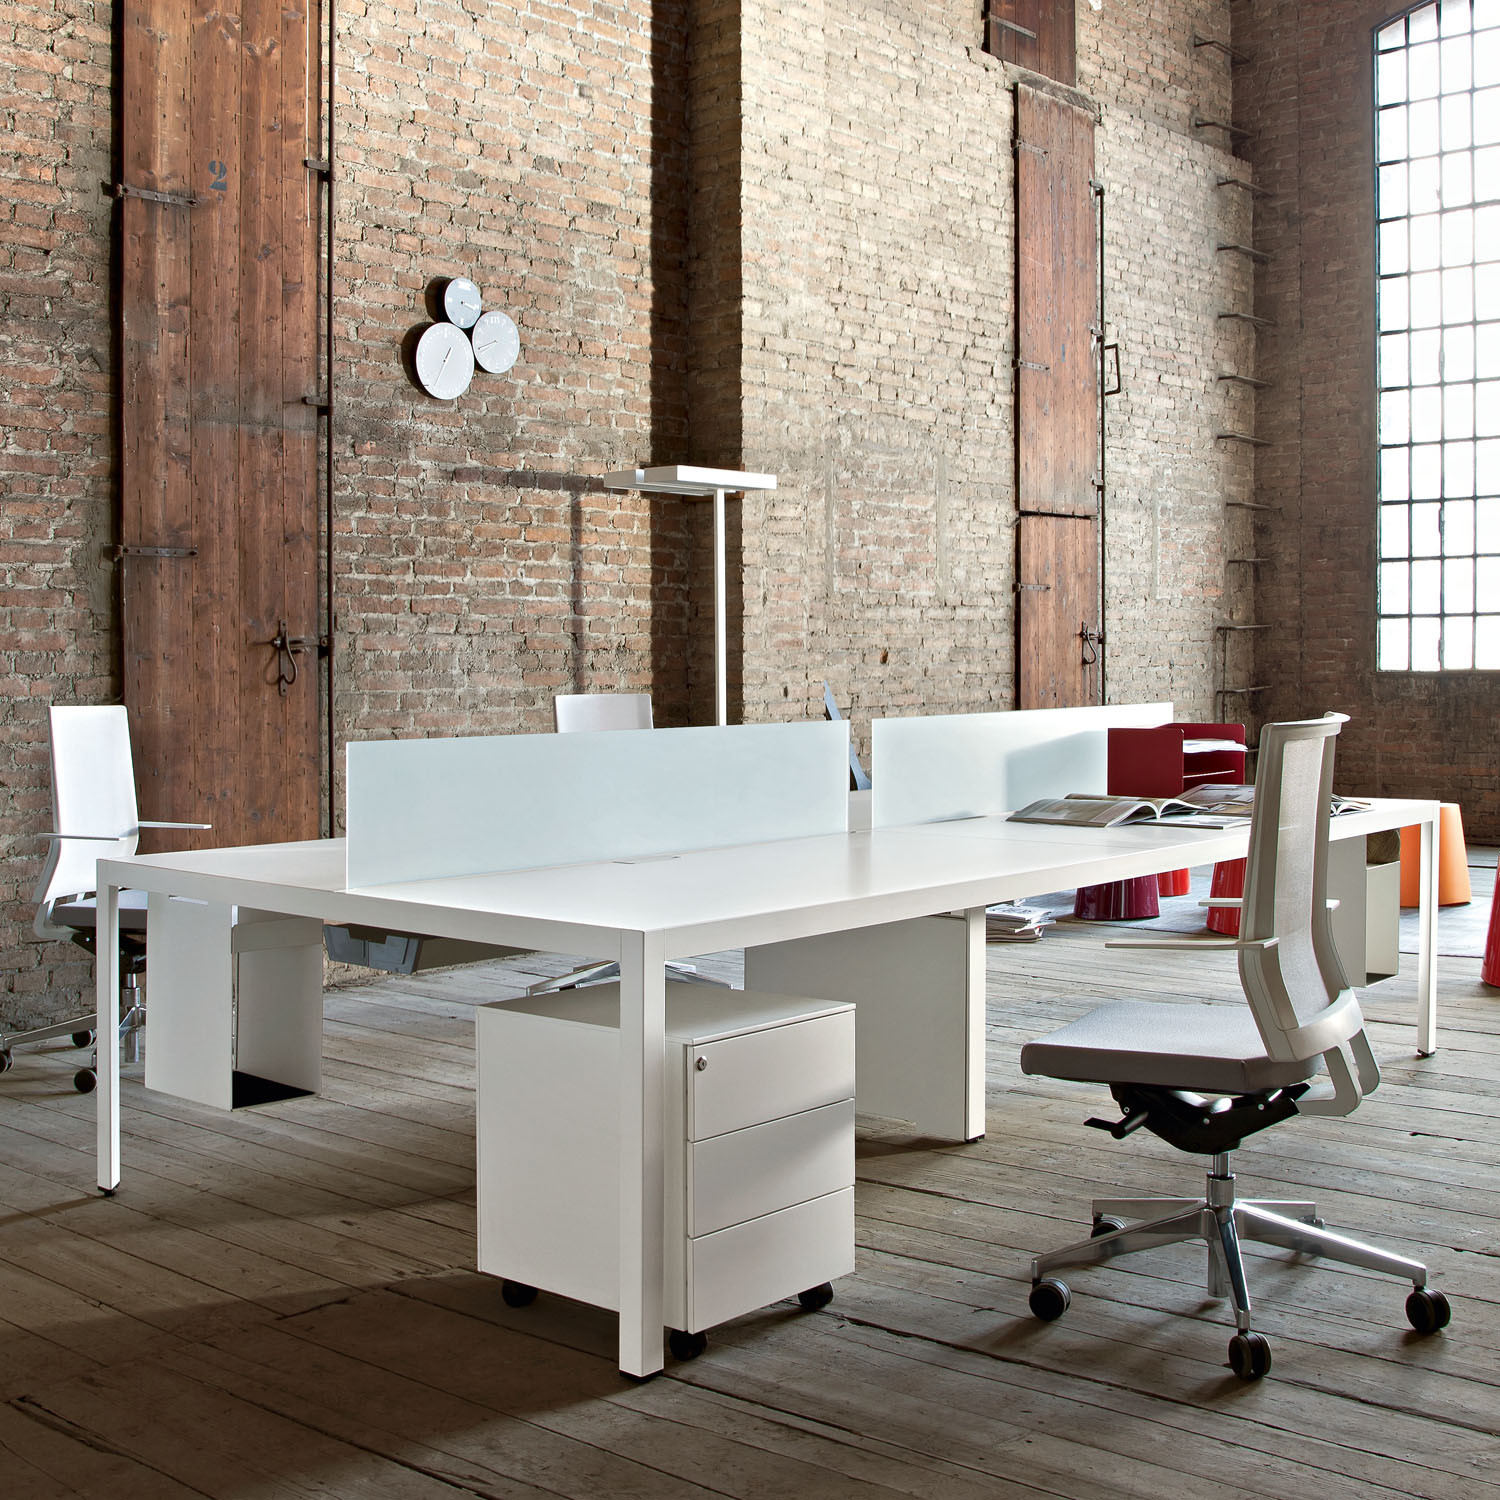 Frame + Office Bench Desk